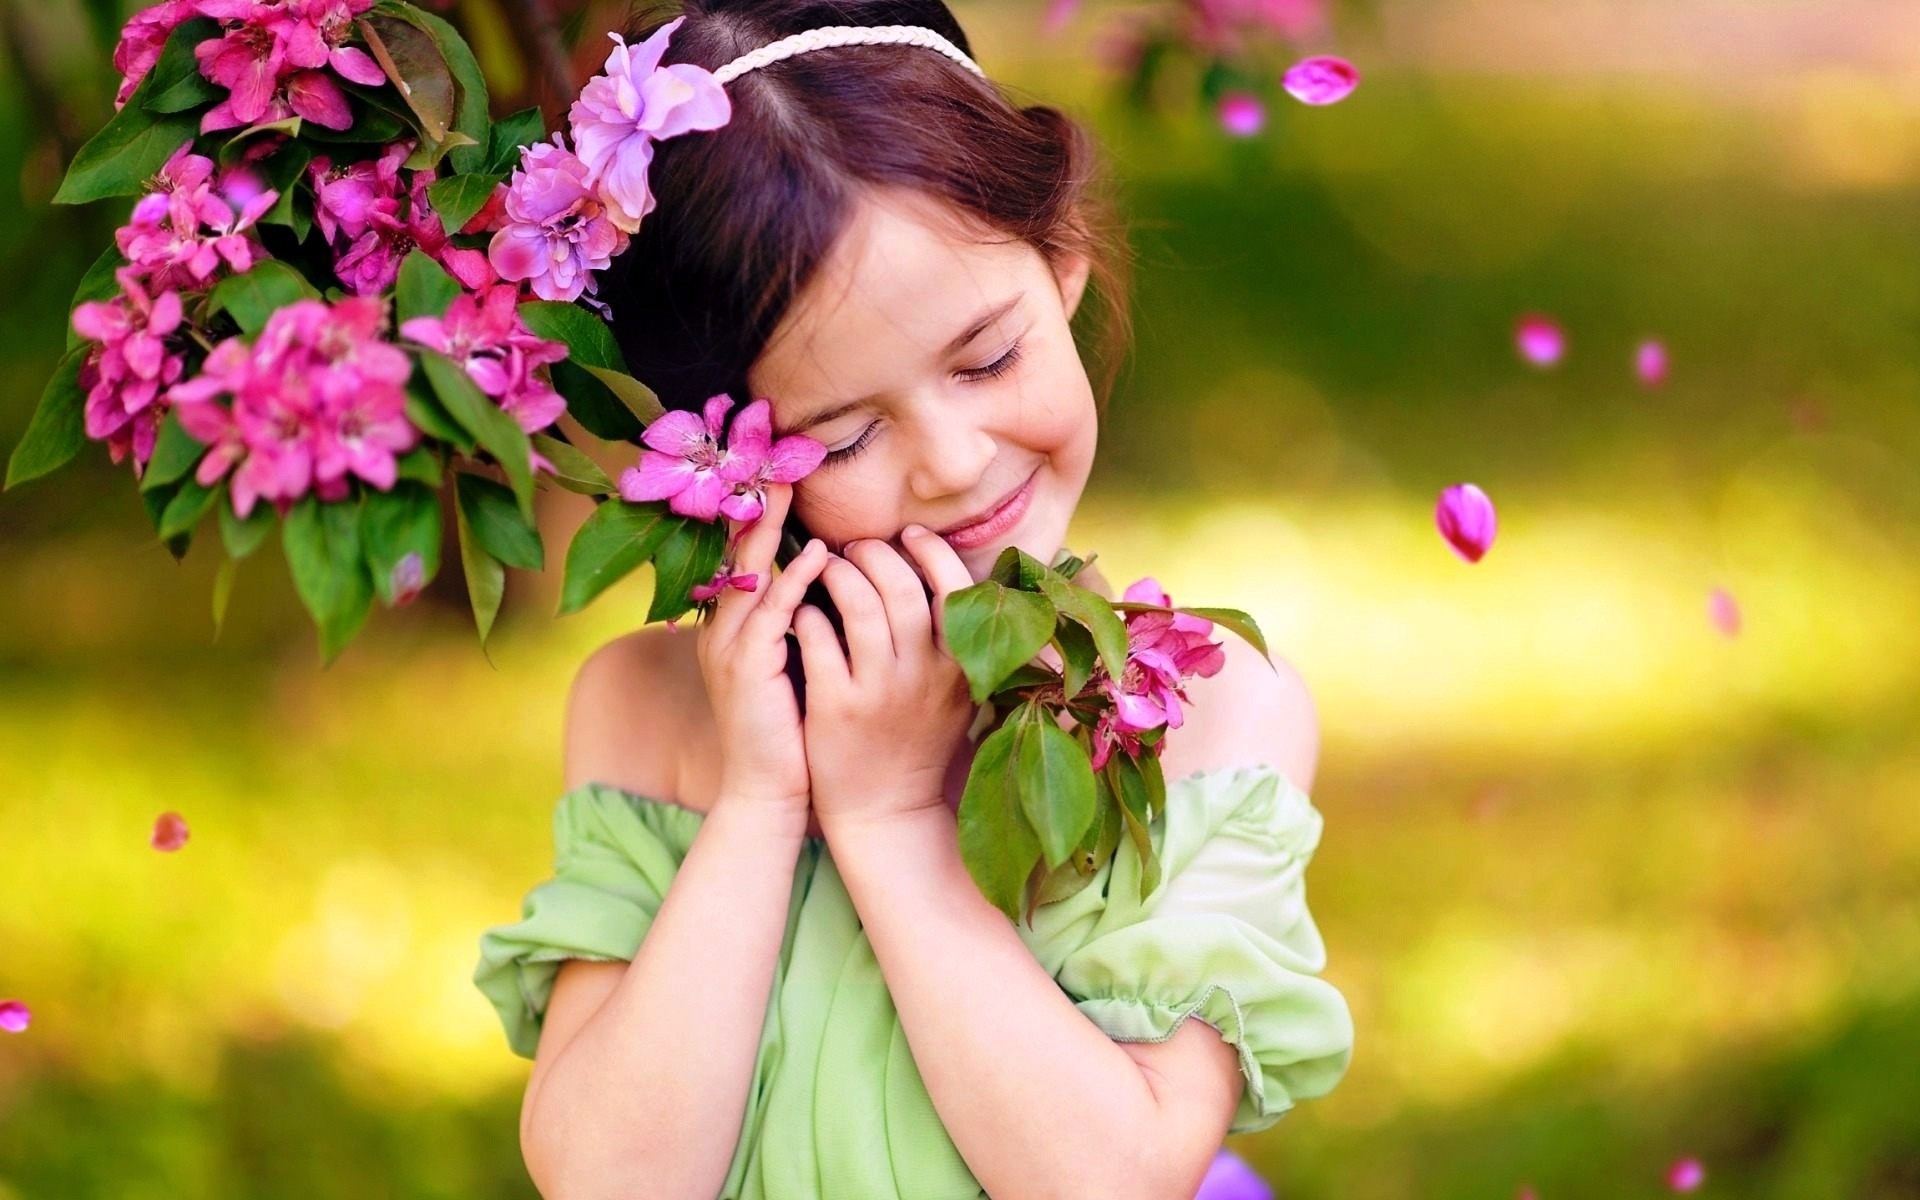 Source - Girl Baby With Flowers - HD Wallpaper